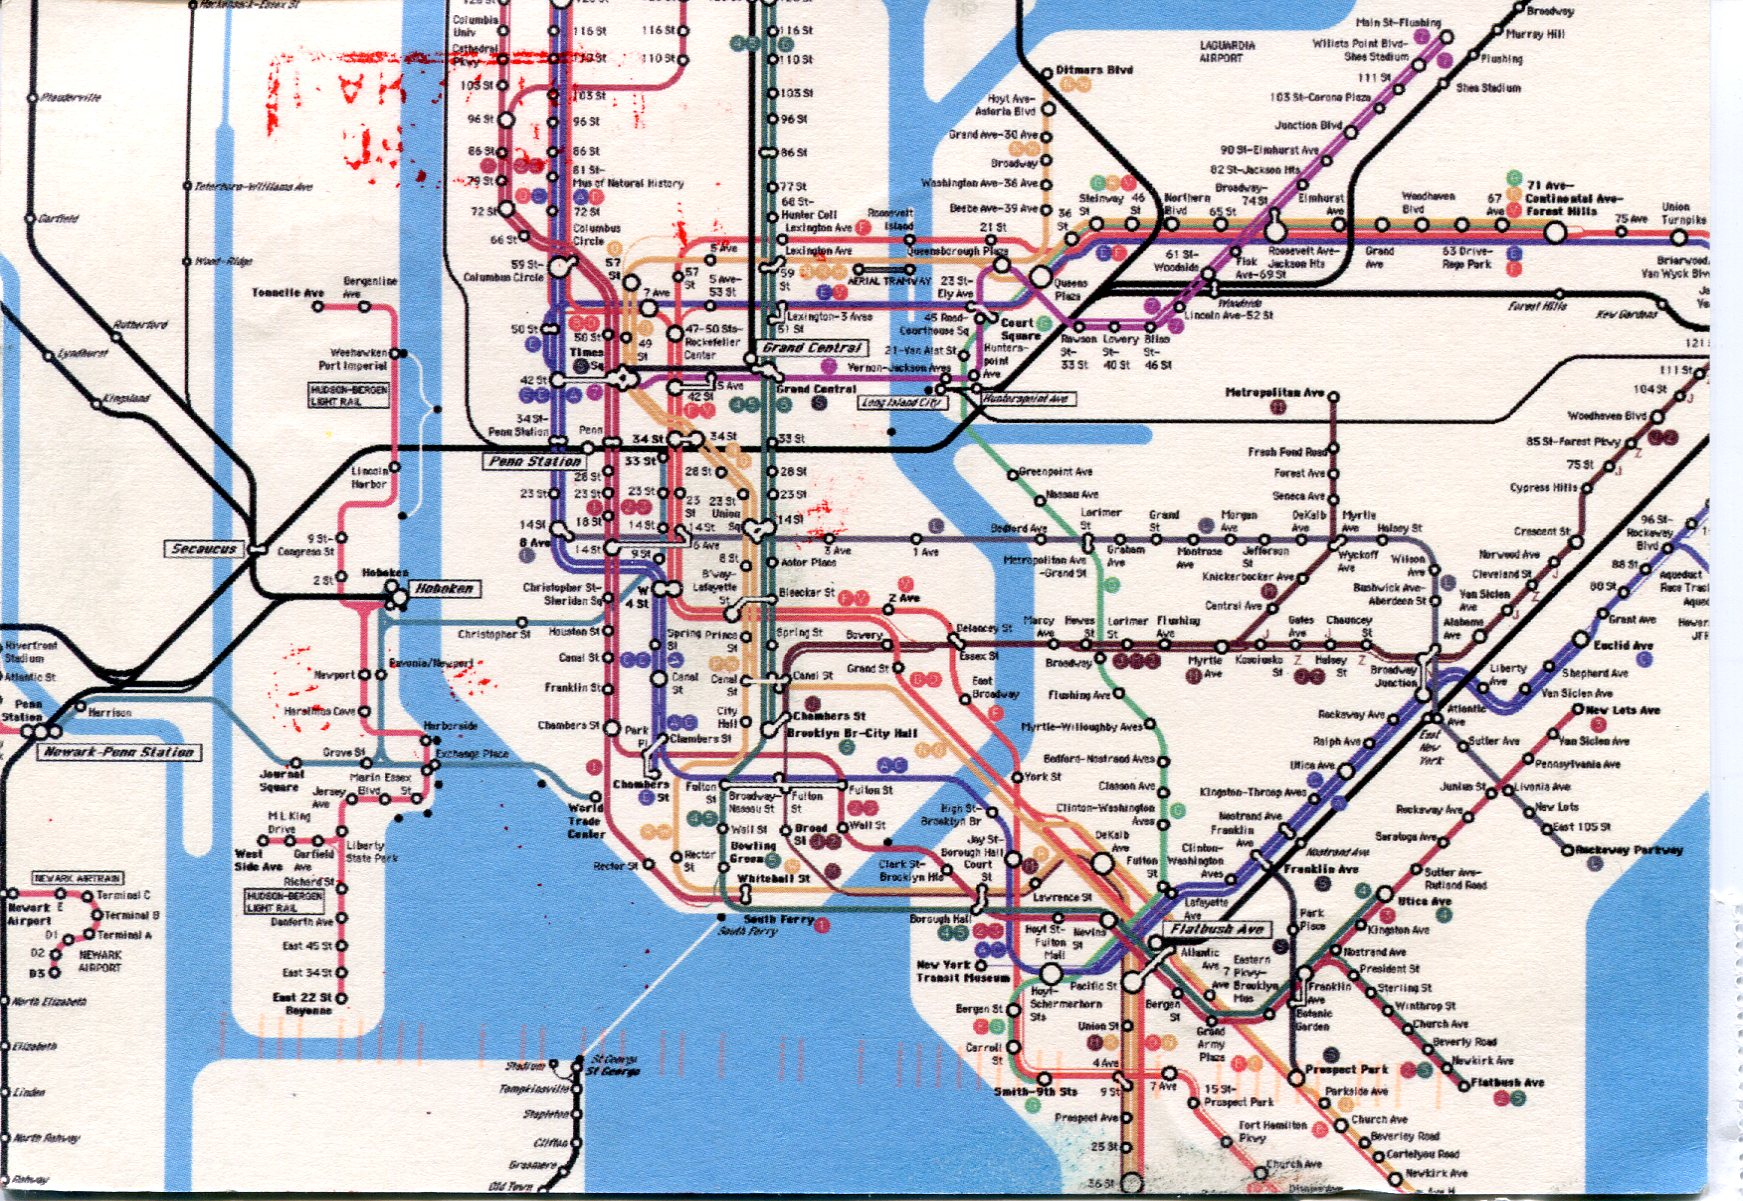 Subway Map For New York City.New York City Subway Map Remembering Letters And Postcards